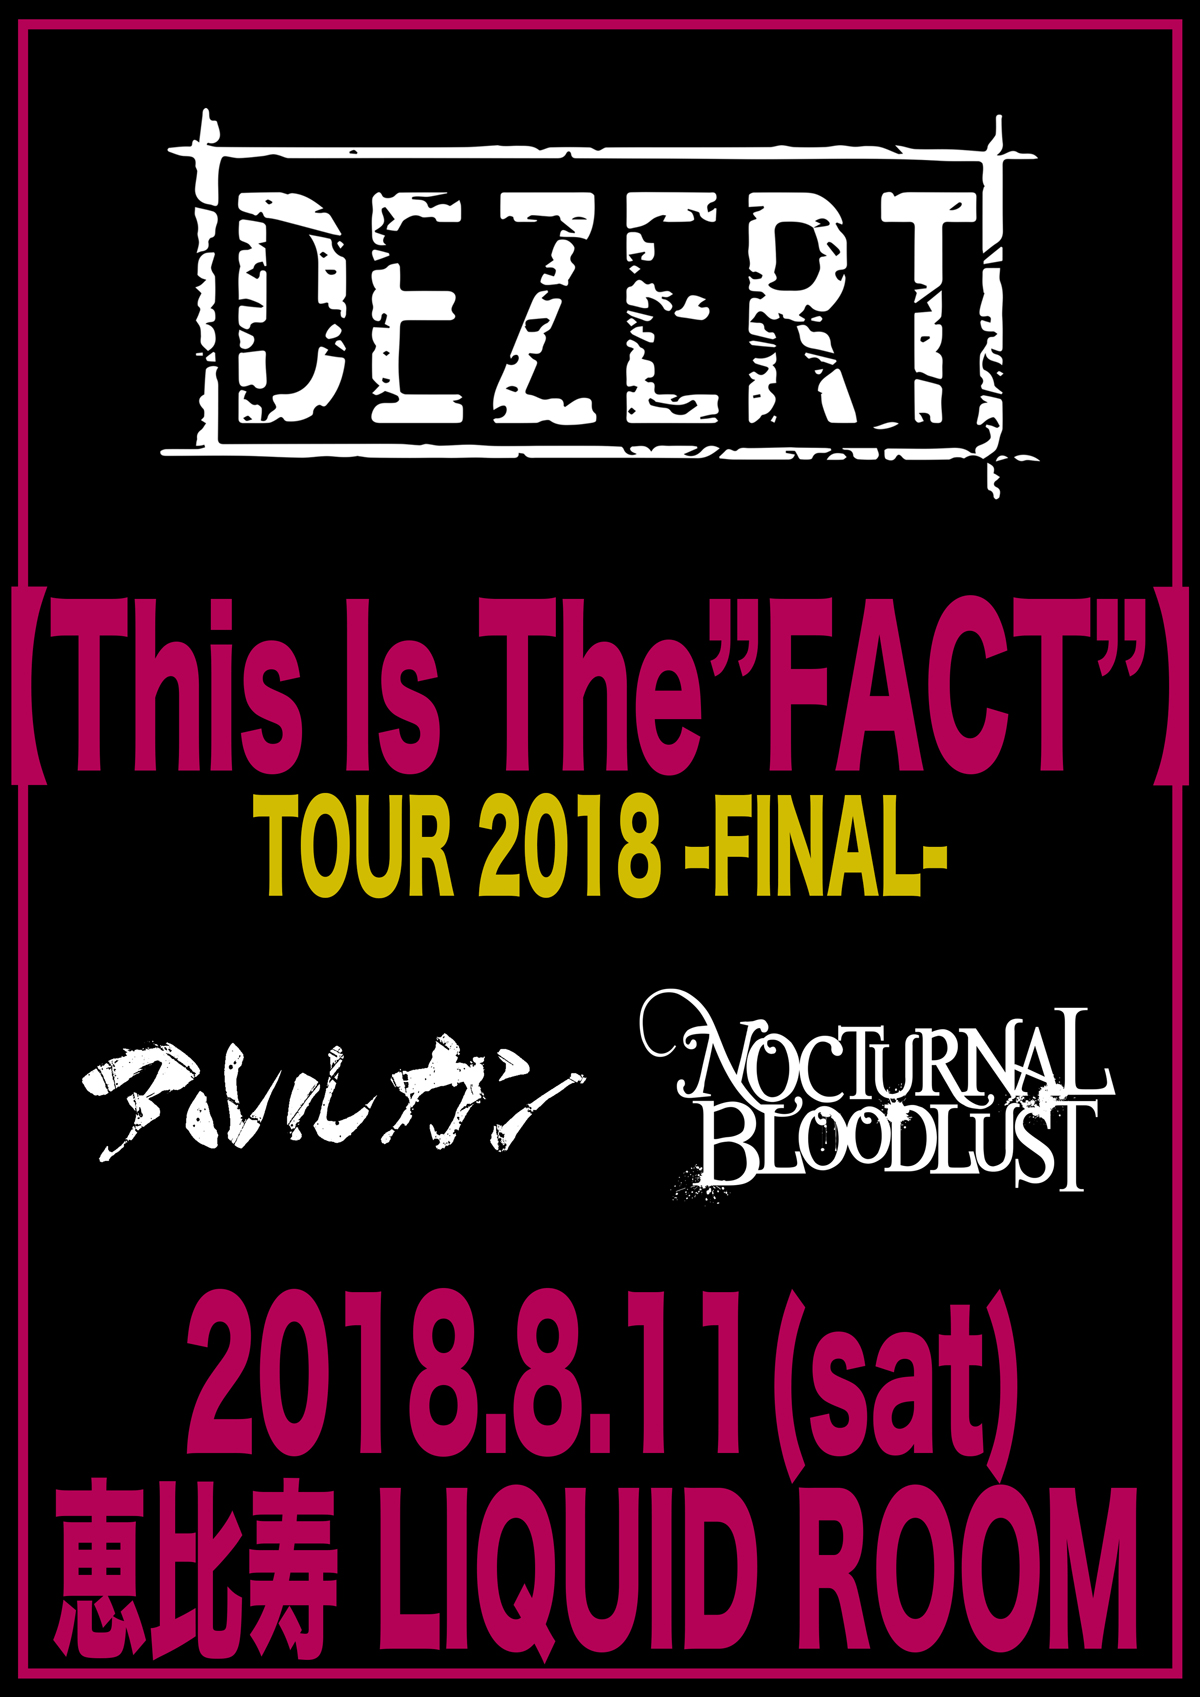 "2018.08.11 (Sat) 恵比寿LIQUID ROOM/DEZERT 【This is The ""Fact""】 TOUR 2018 -FINAL- (DEZERT / アルルカン / NOCTURNAL BLOODLUST)"